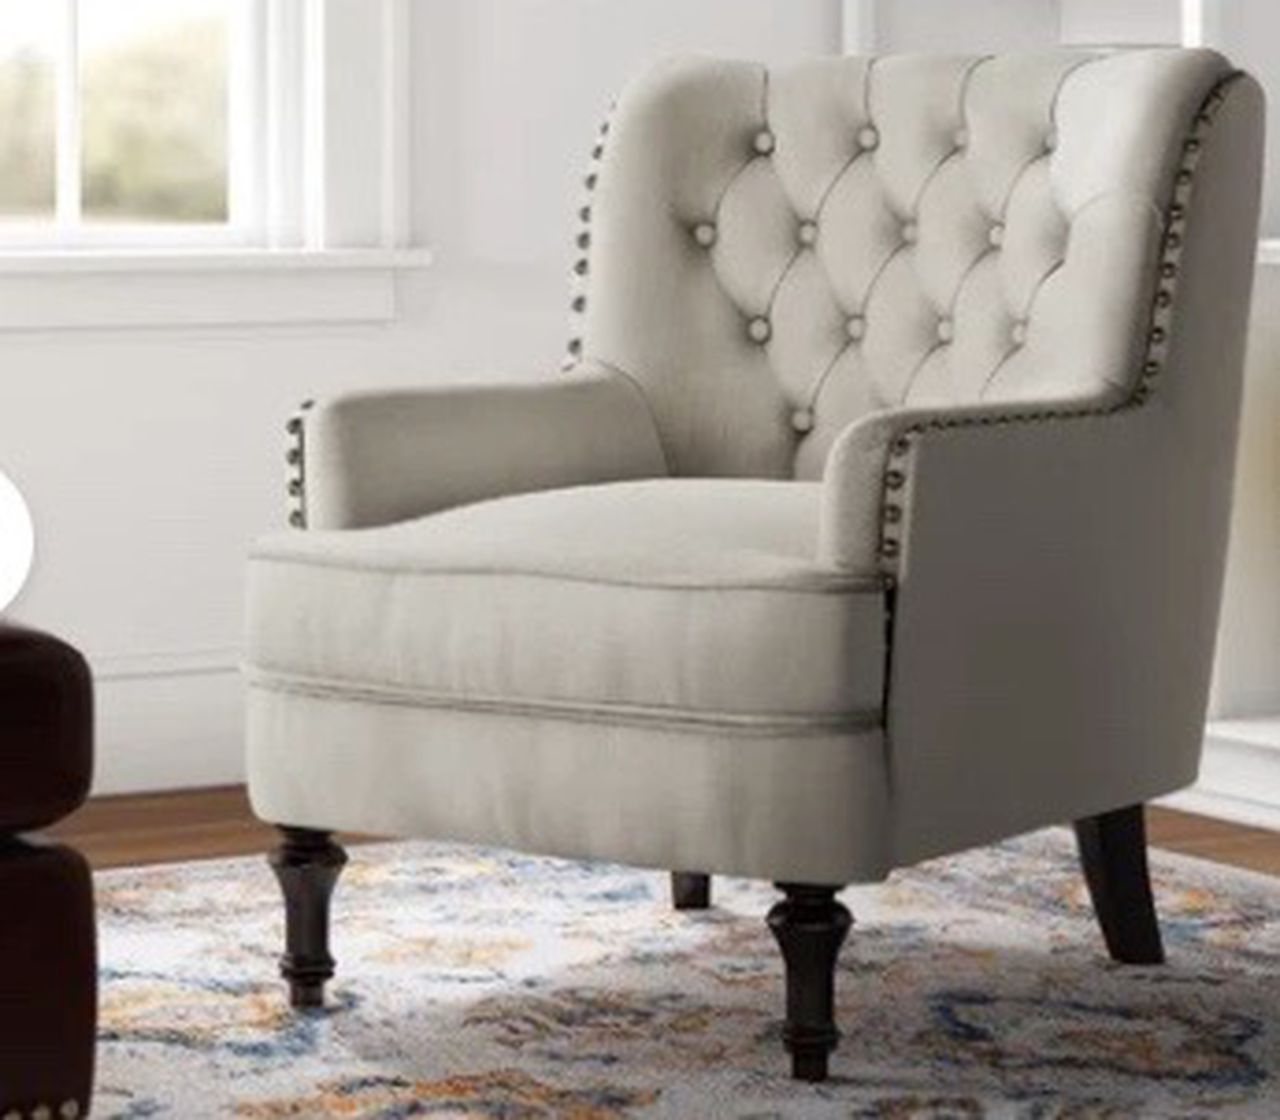 Save Up To 80% During Wayfair'S Closeout Sale On Furniture Inside Jayde Armchairs (View 11 of 15)